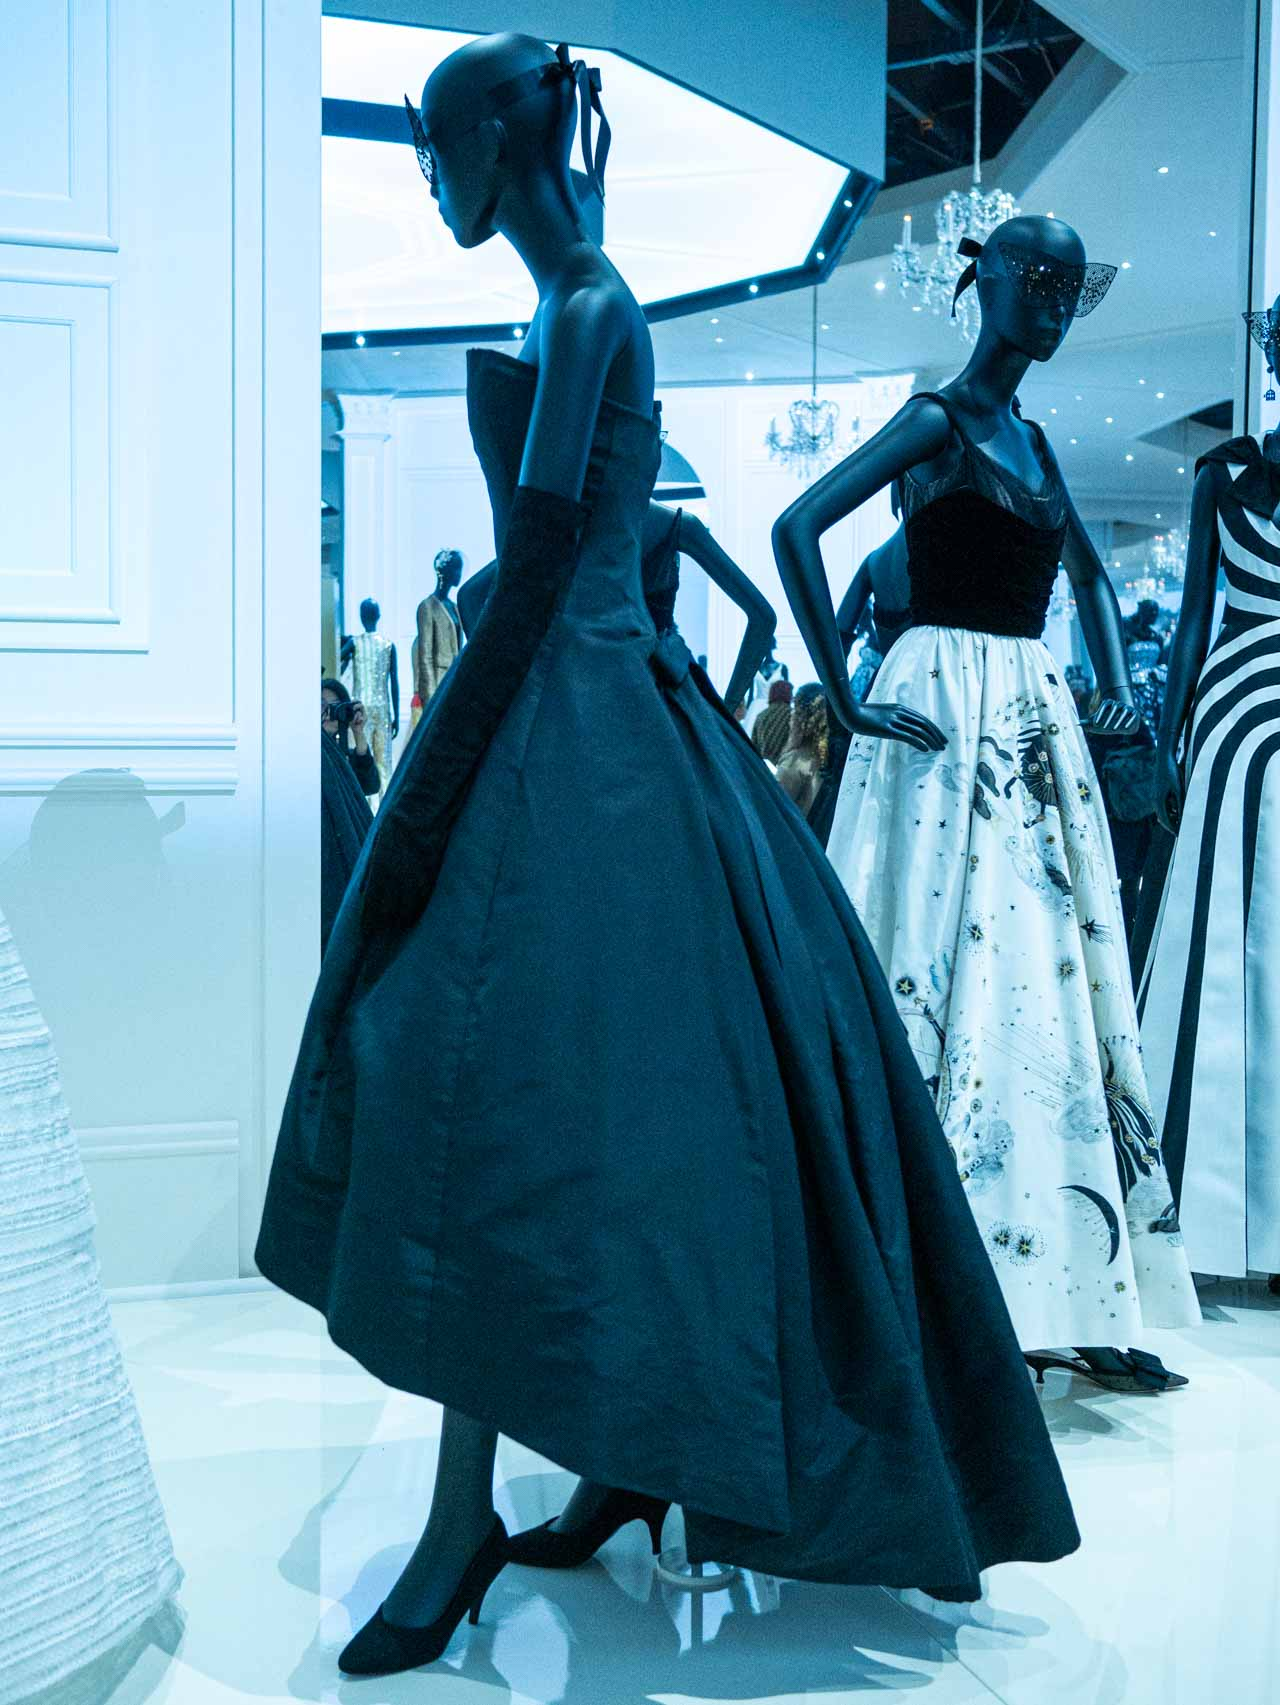 Christian Dior: Designer of Dreams. Taken at the V&A exhibition © The Cutting Class, 2019.